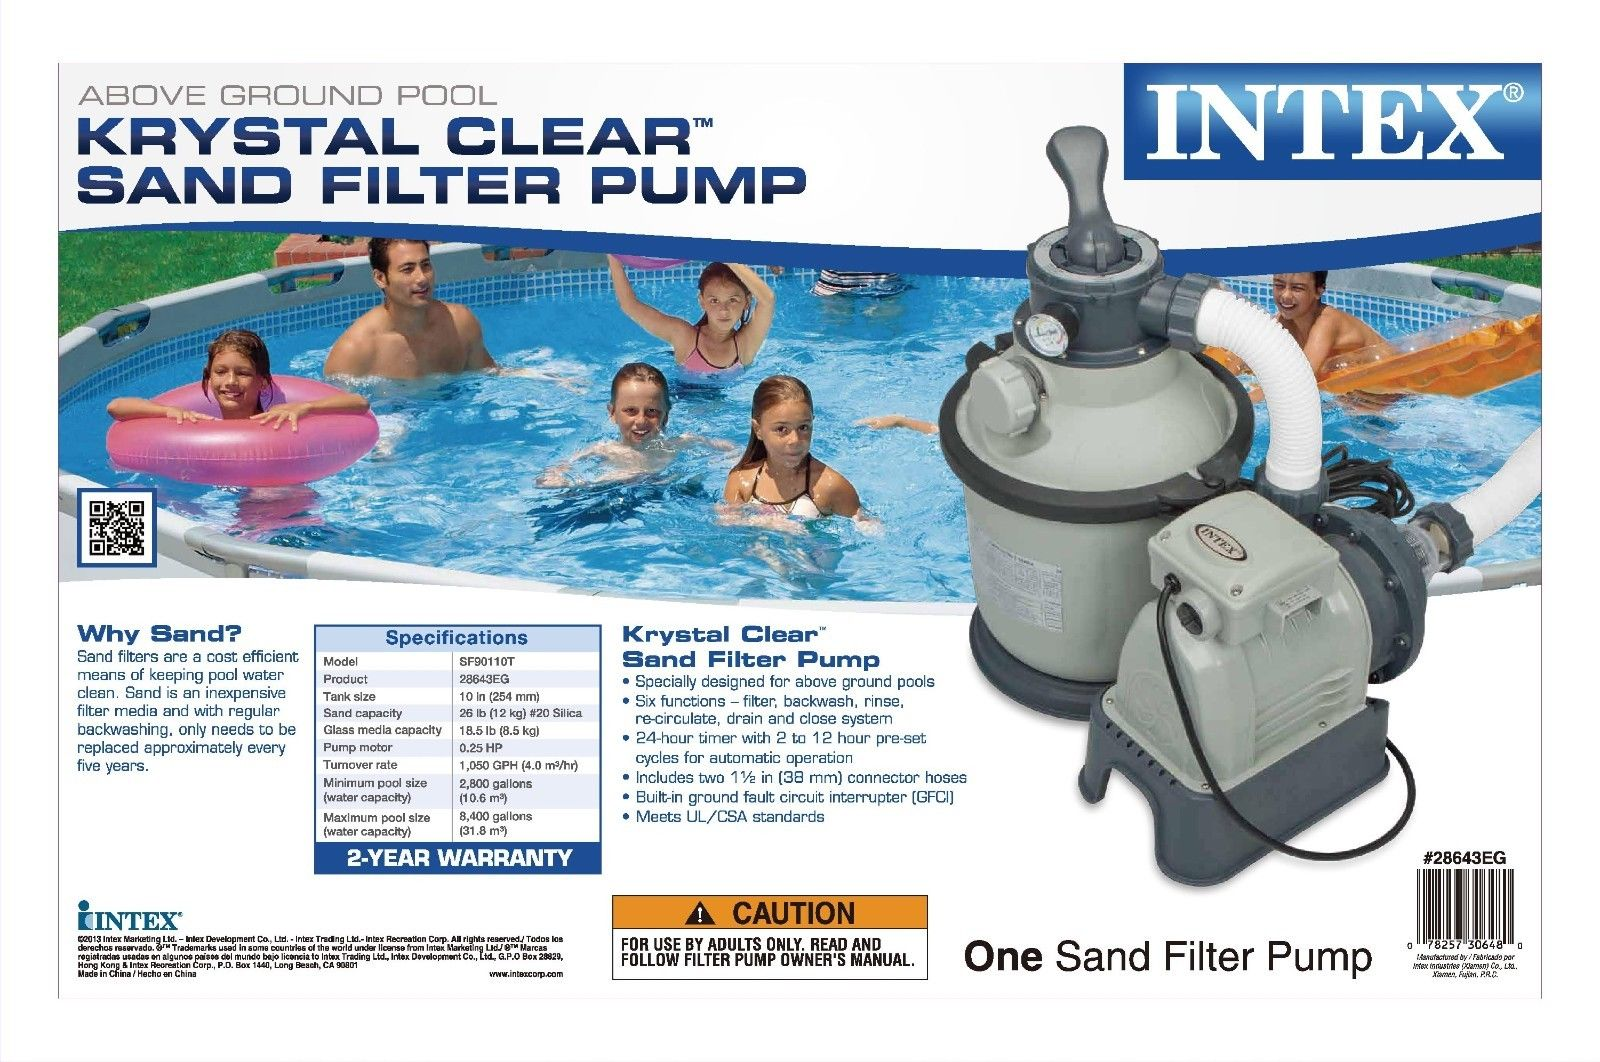 Sandfilter Pool Anleitung Bestway Details About Intex 1200 Gph Krystal Clear Above Ground Pool Sand Filter Pump Set 28643eg